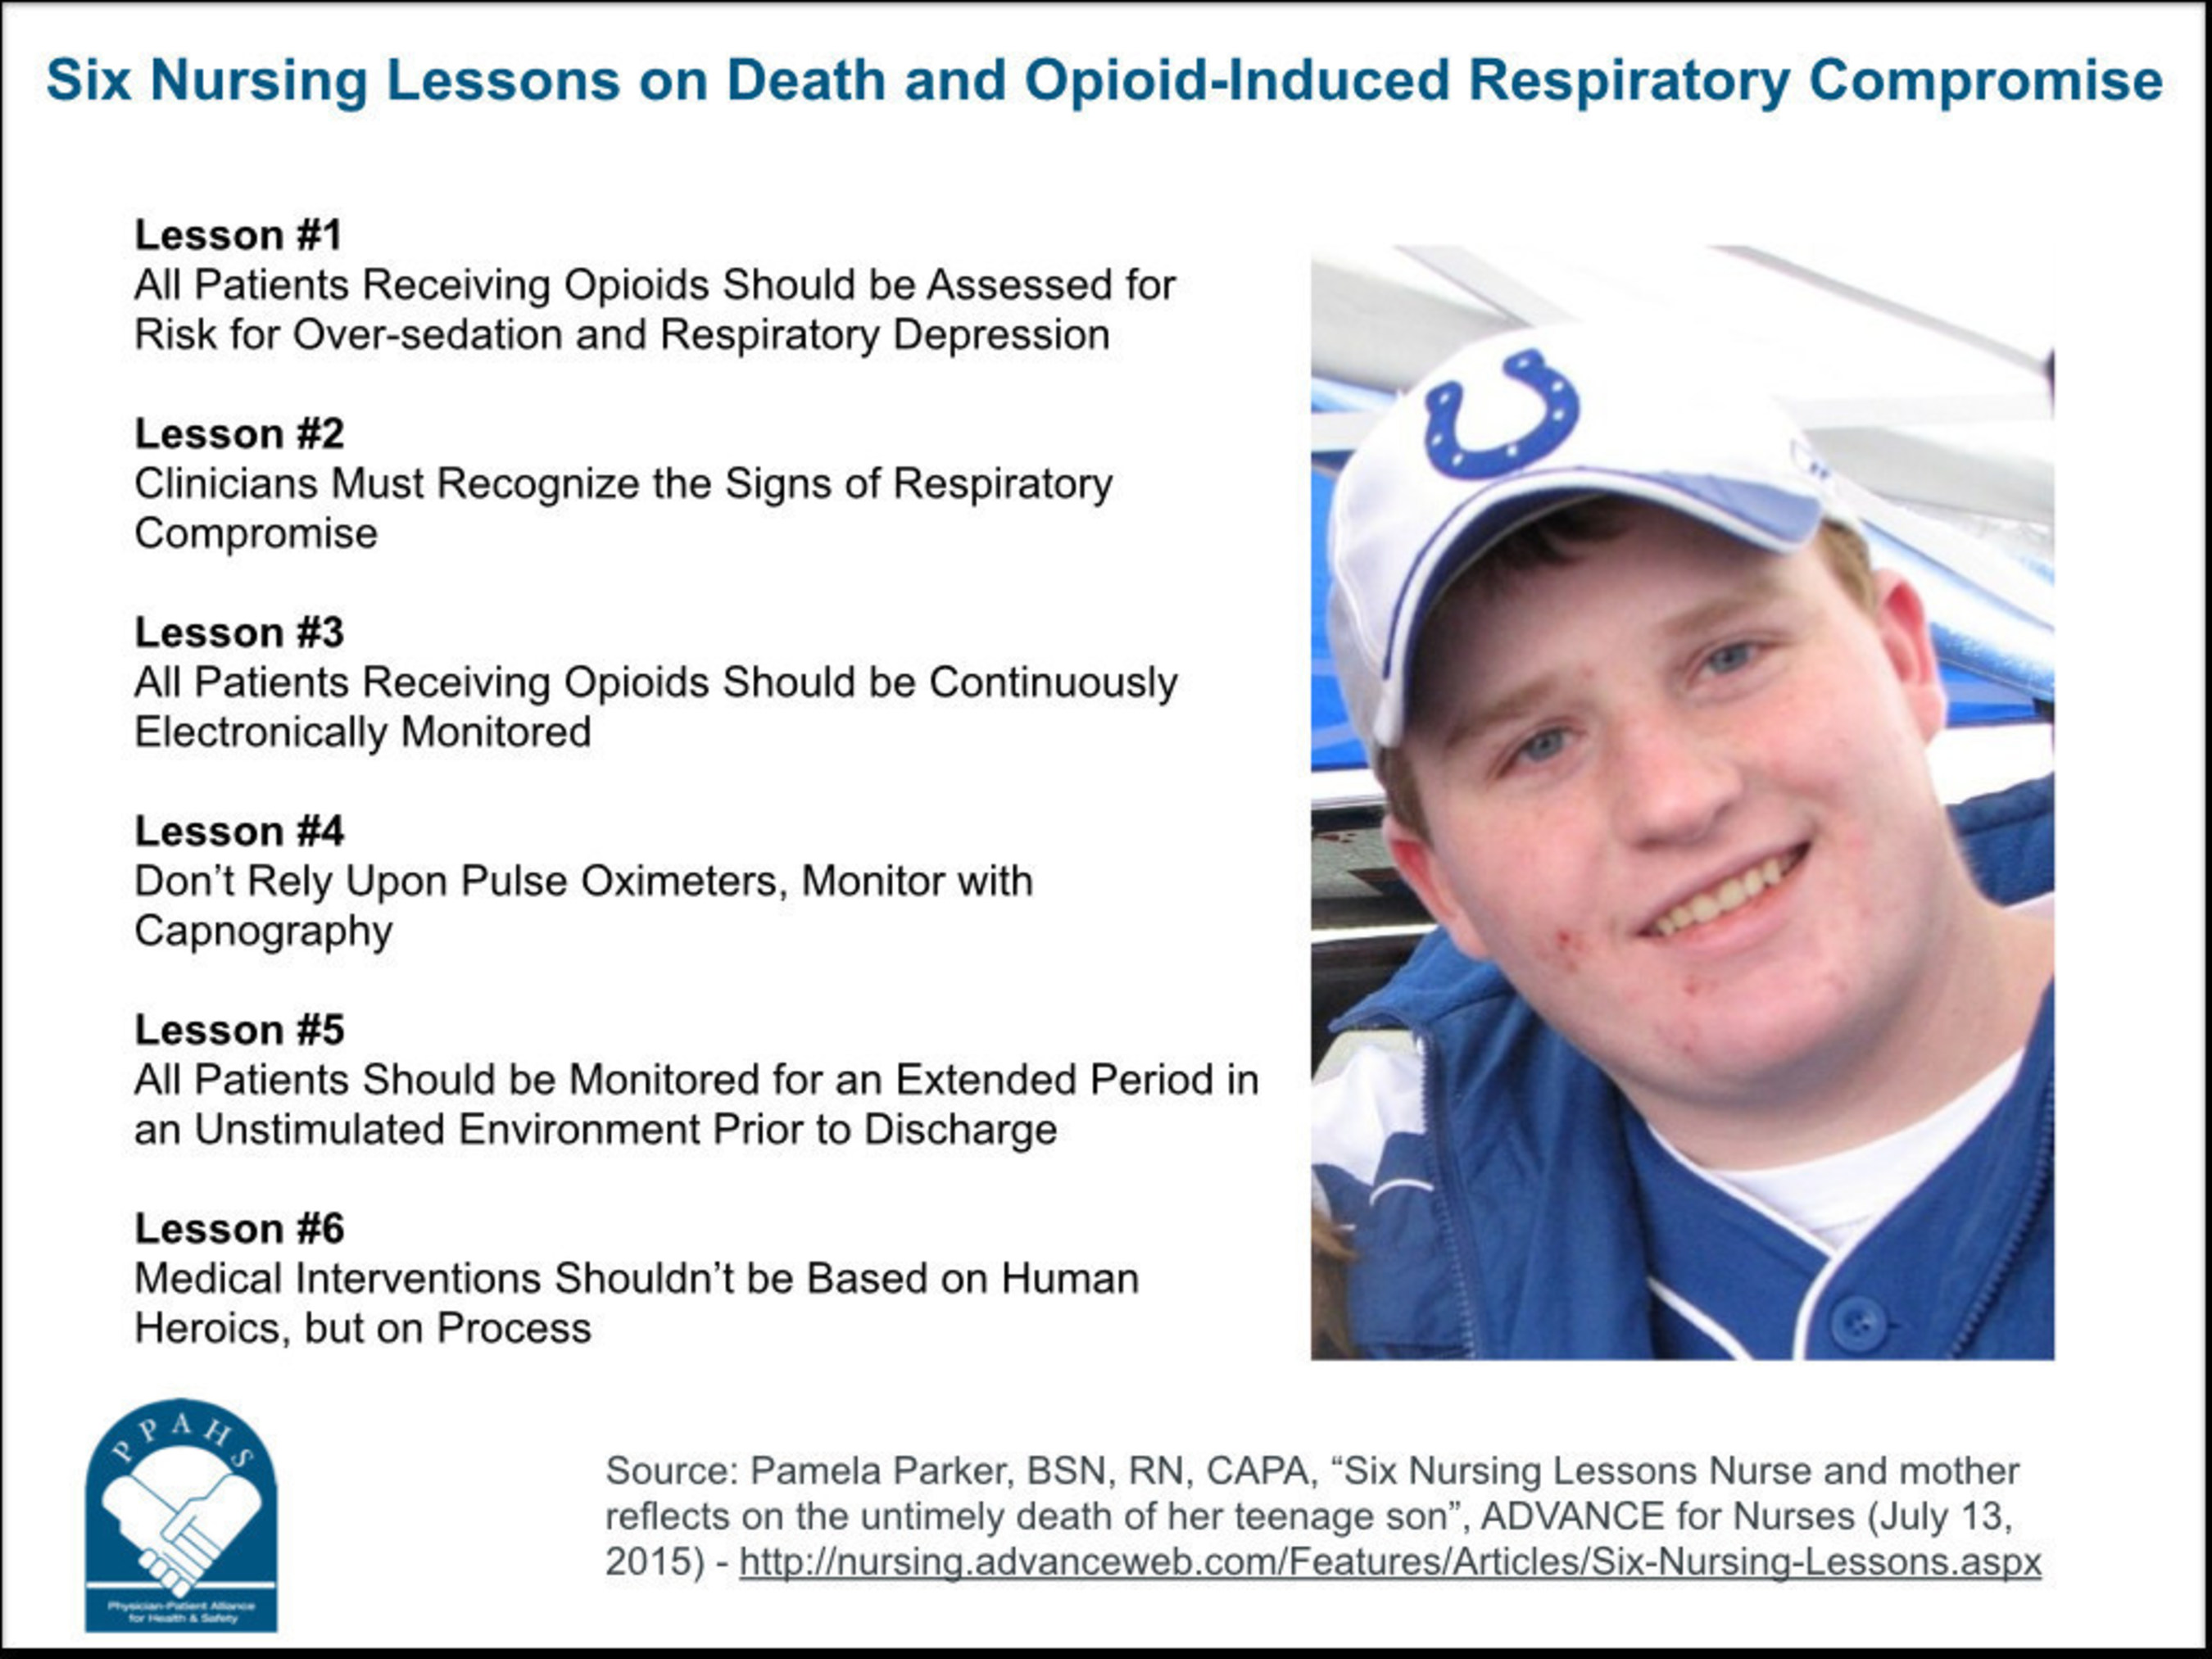 Six lessons on death and opioid-induced respiratory compromise in honor of the death anniversary of 17-year old Logan